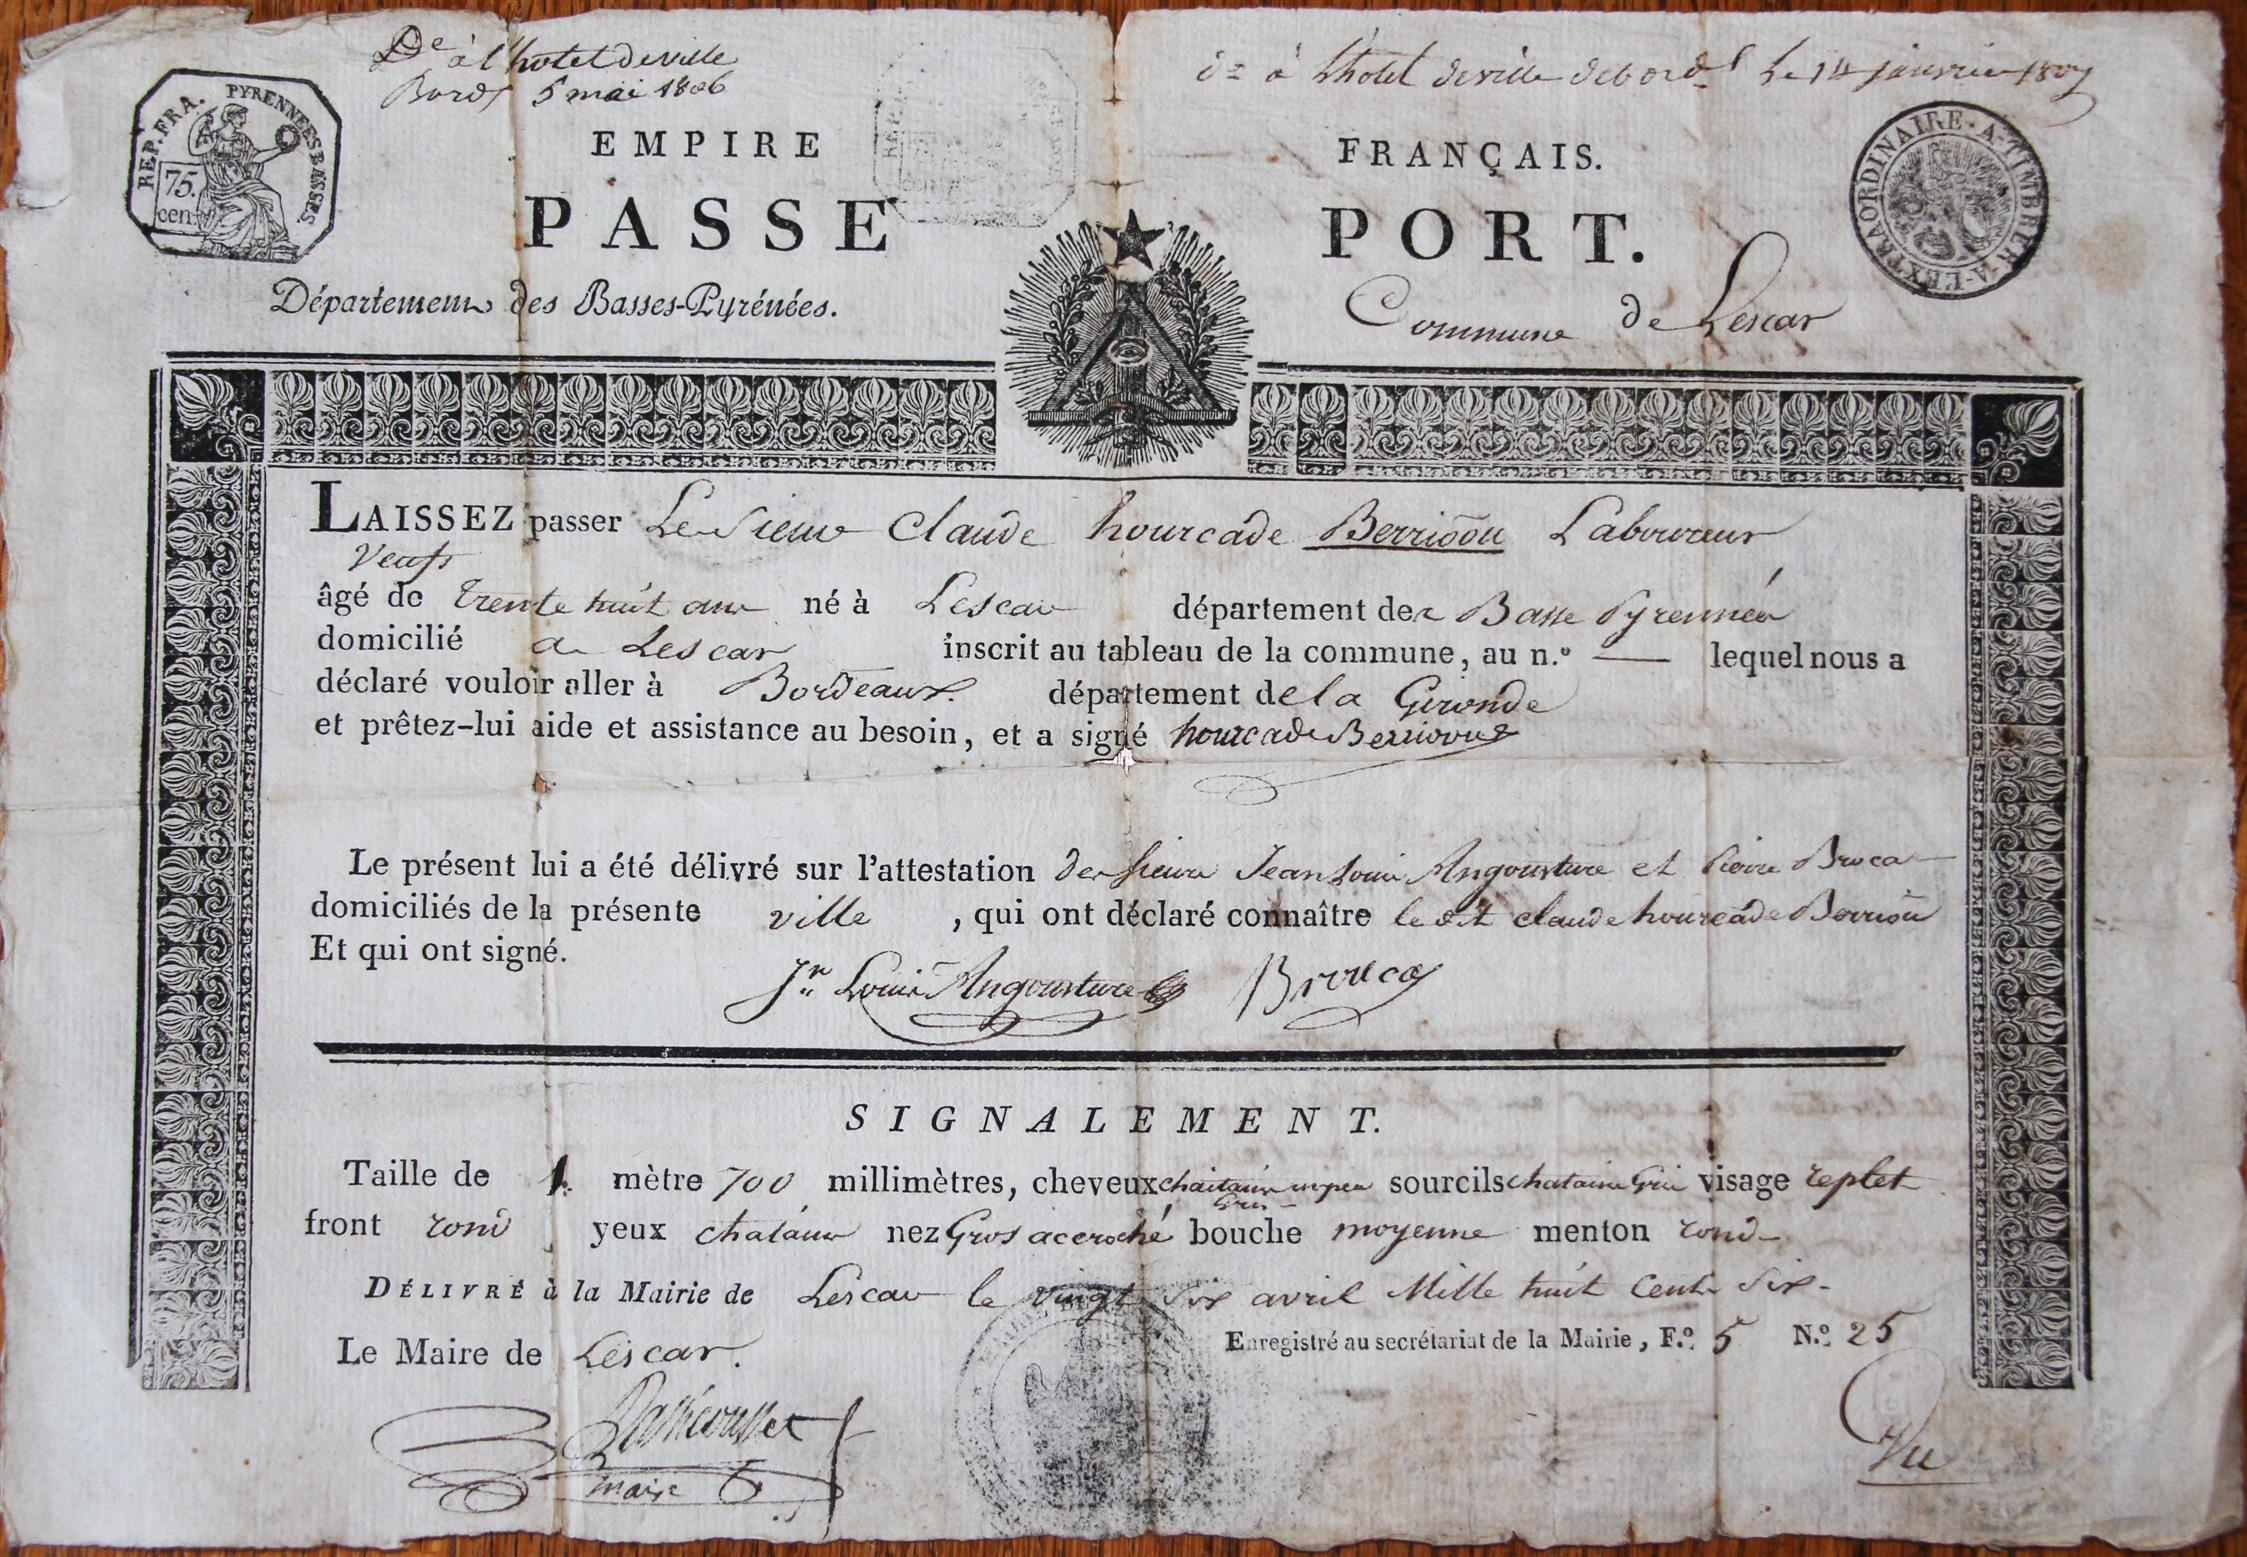 Passeport revolutionnaire de Claude Hourcade